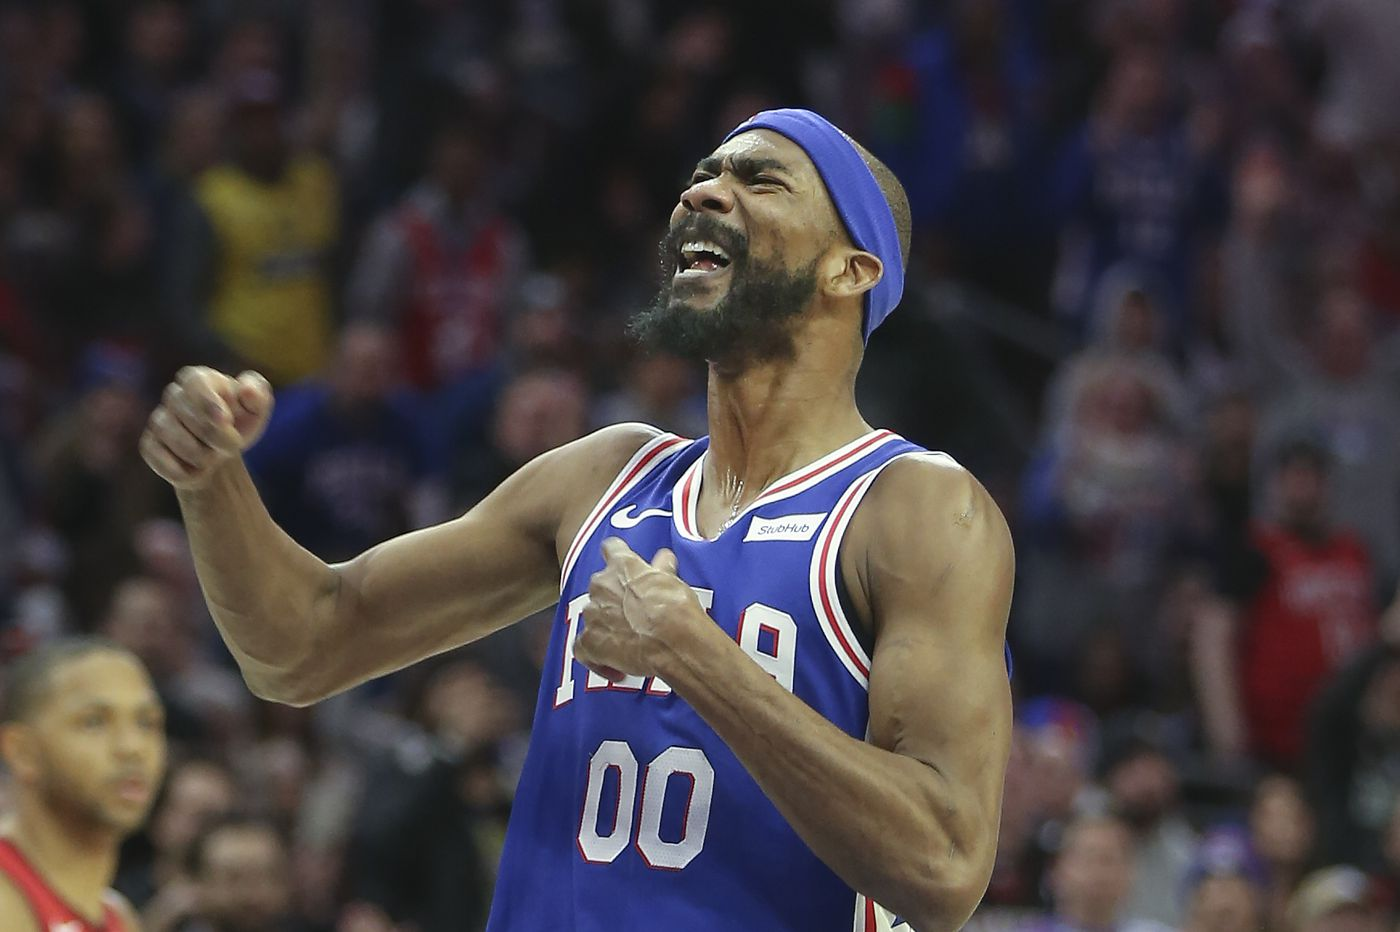 Watch: New Sixer Corey Brewer goes viral for incredible defense on James Harden